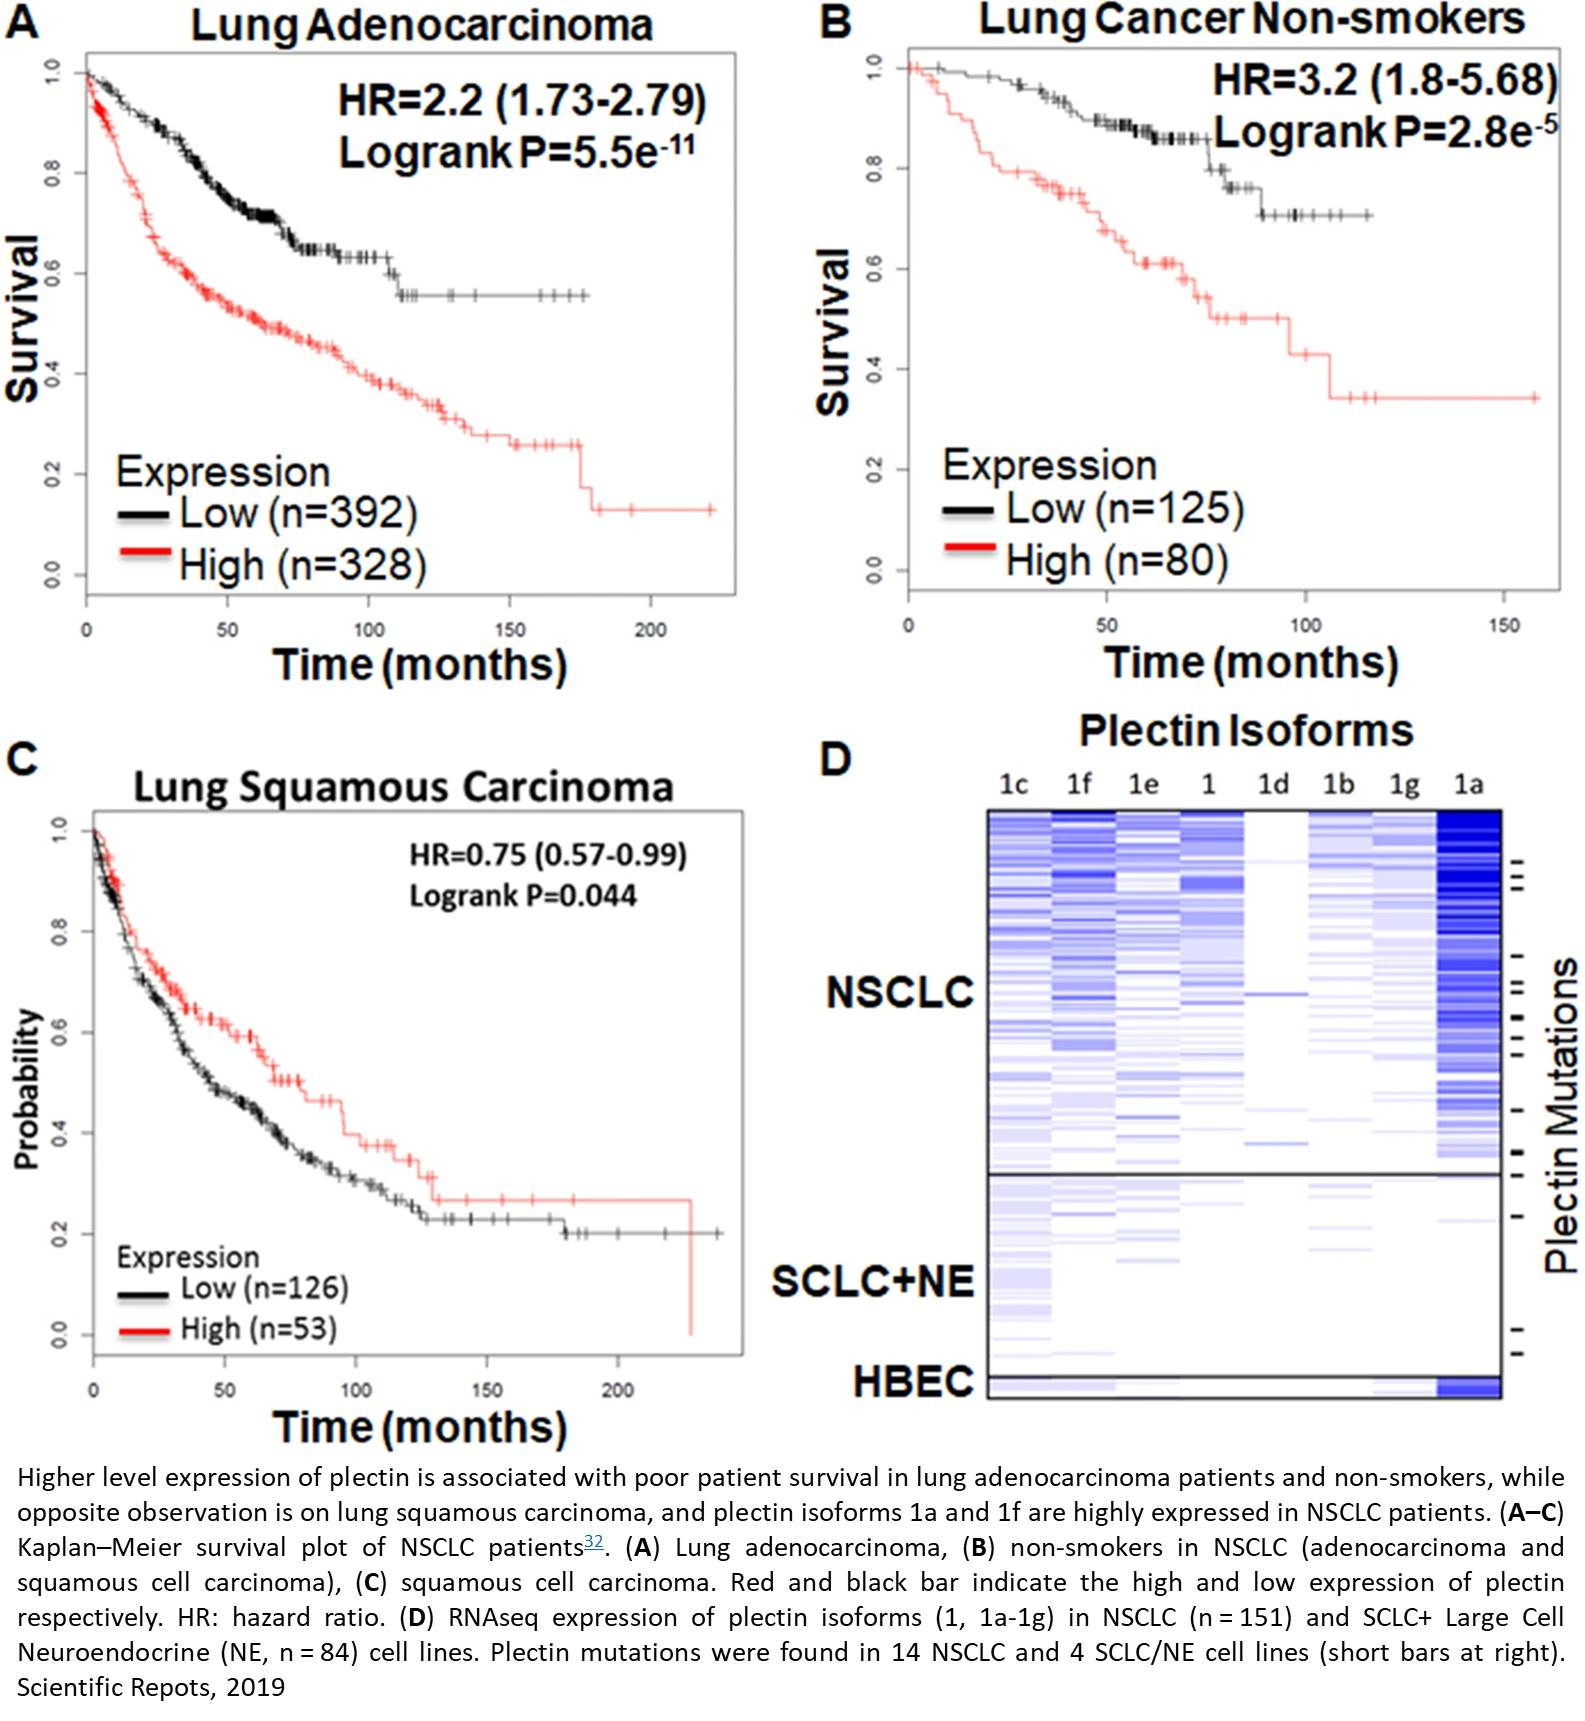 Plectin protein as a potential biomarker for lung cancer stem cells